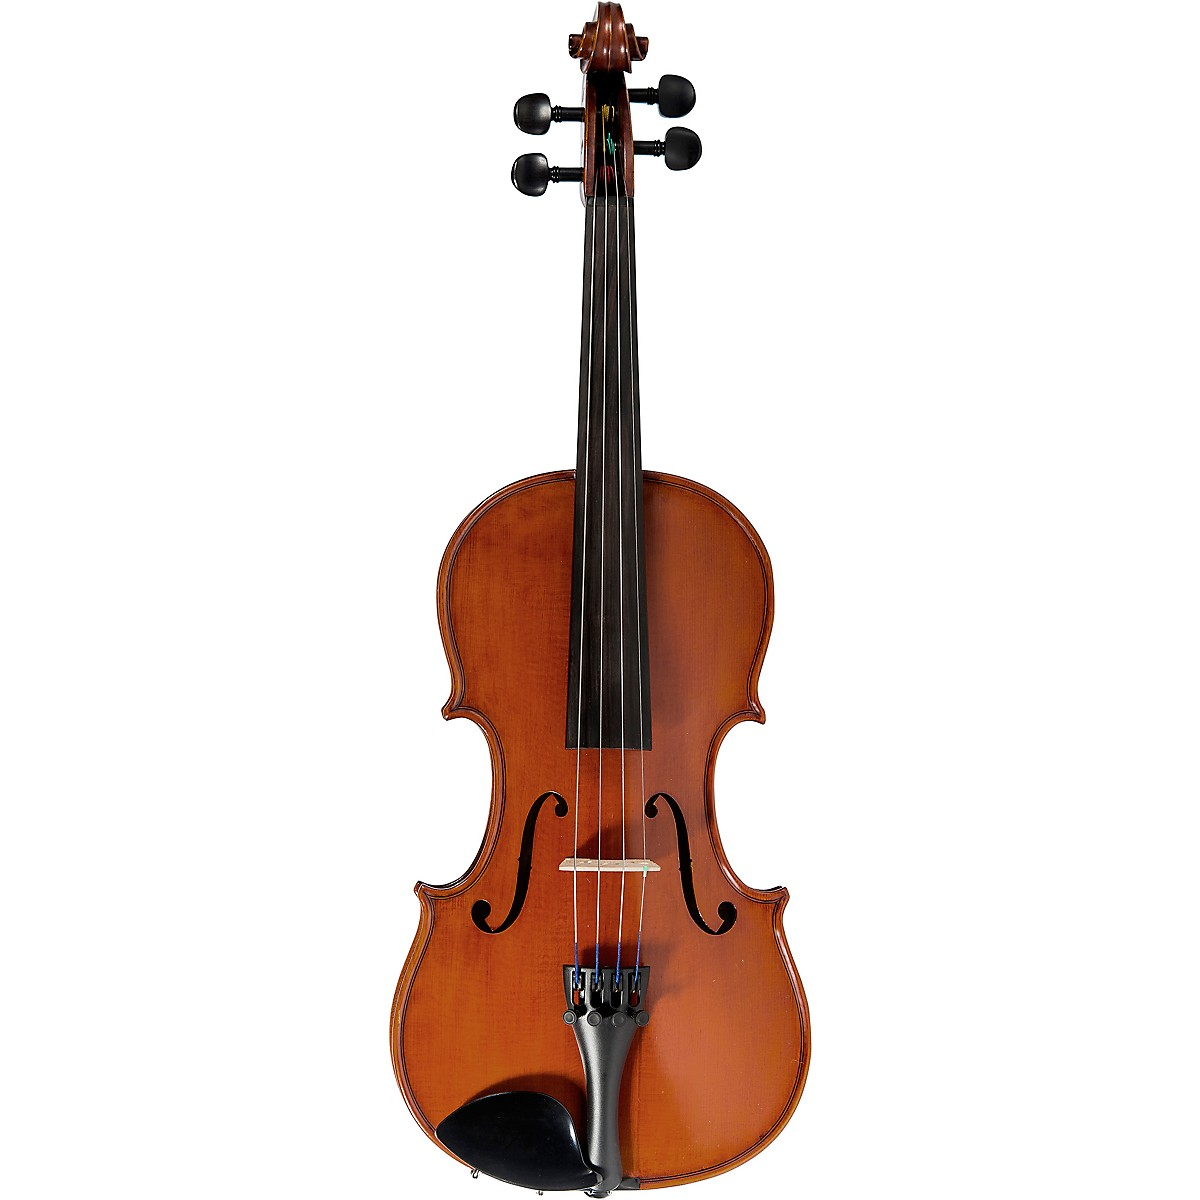 STROBEL ML-85 Student Series 1/4 Size Violin Outfit